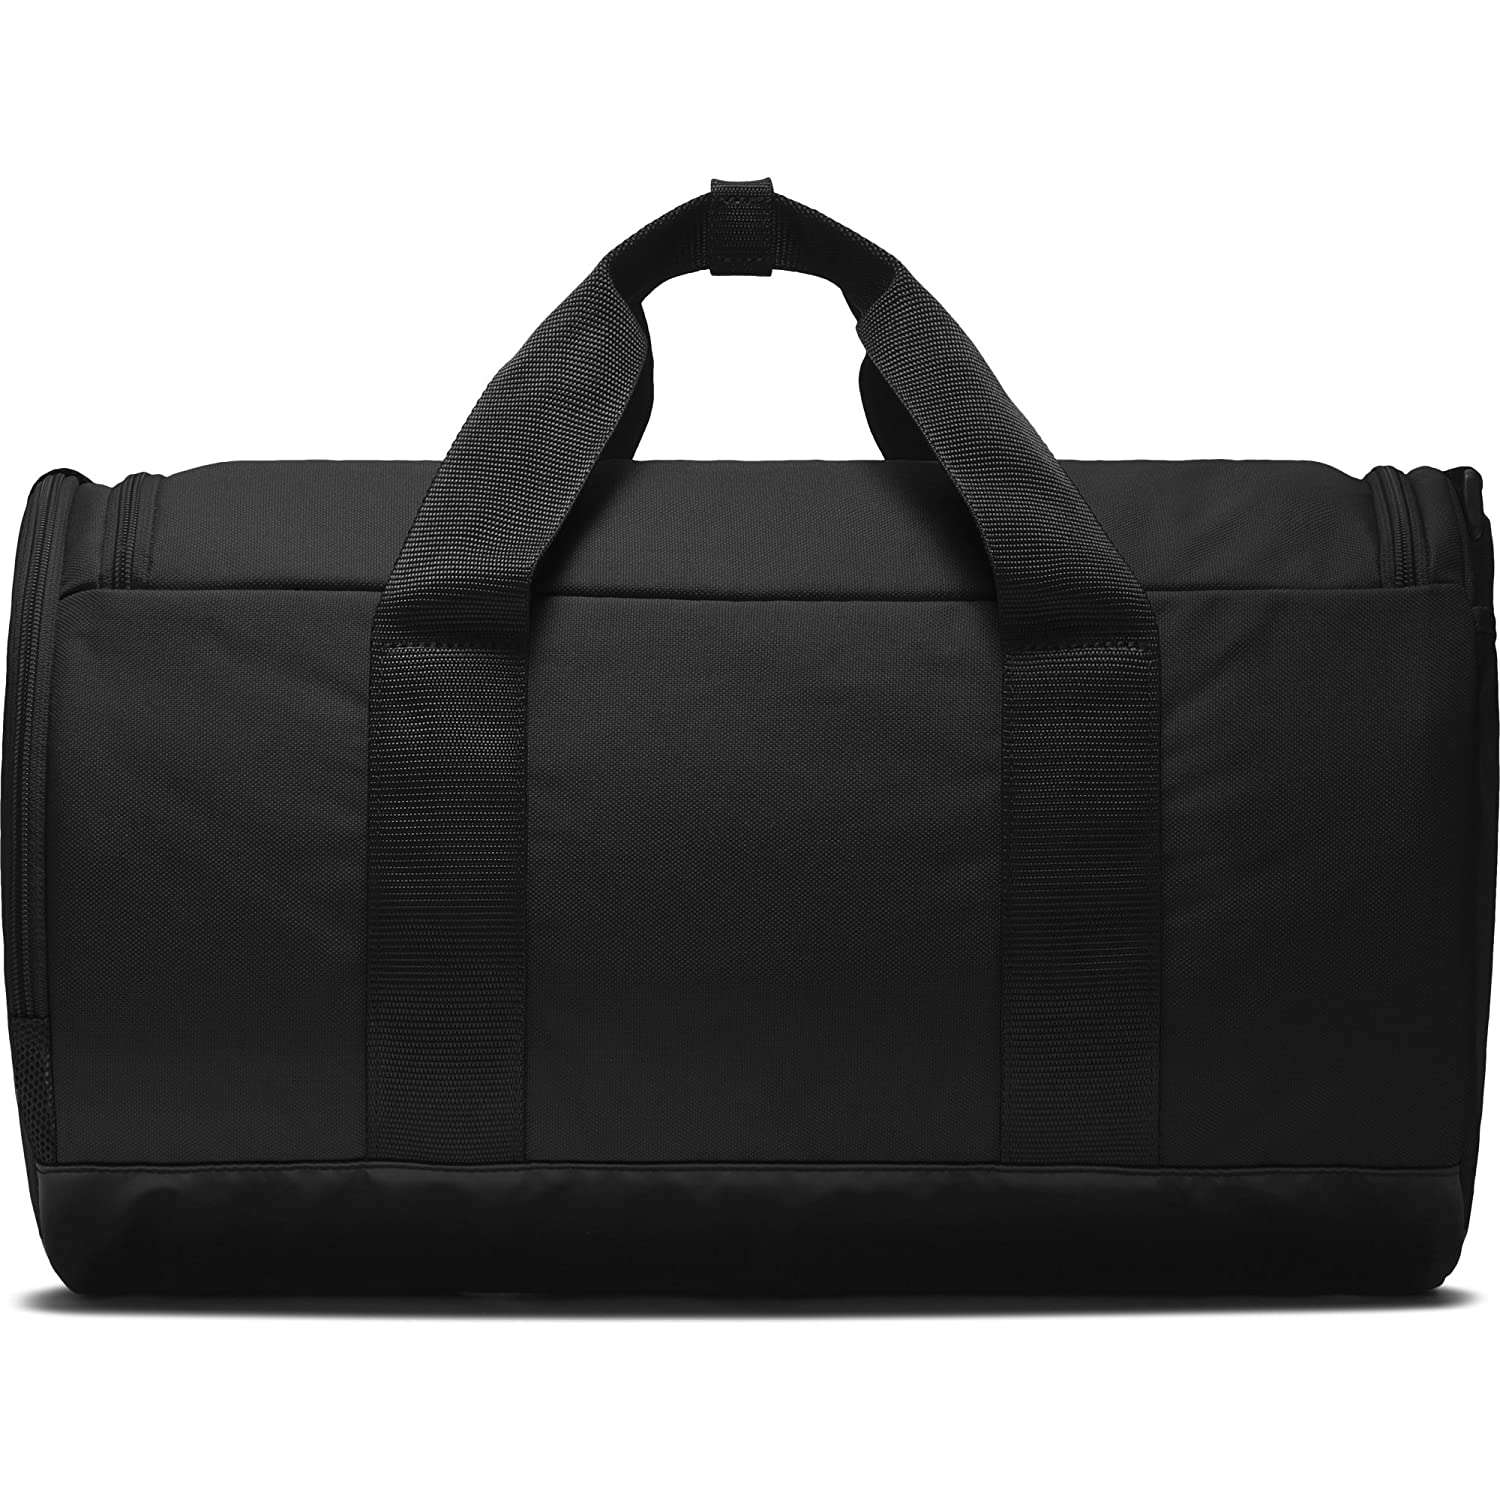 Amazon.com  NIKE Team Women s Training Duffel Bag, Black Black White, One  Size  Sports   Outdoors ed96bfb9e3